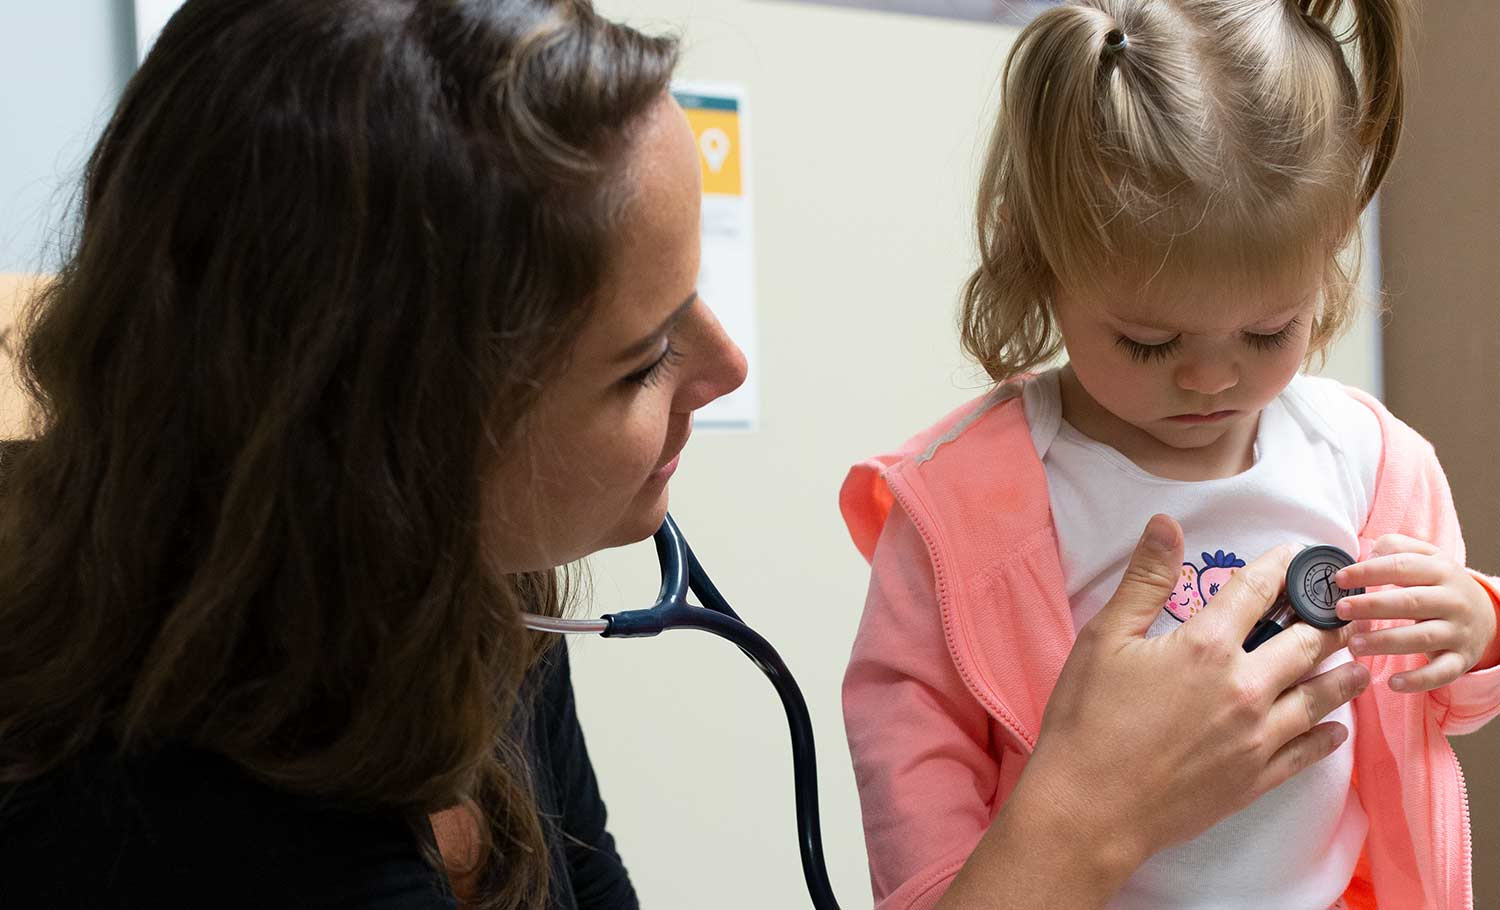 pediatrician and patient